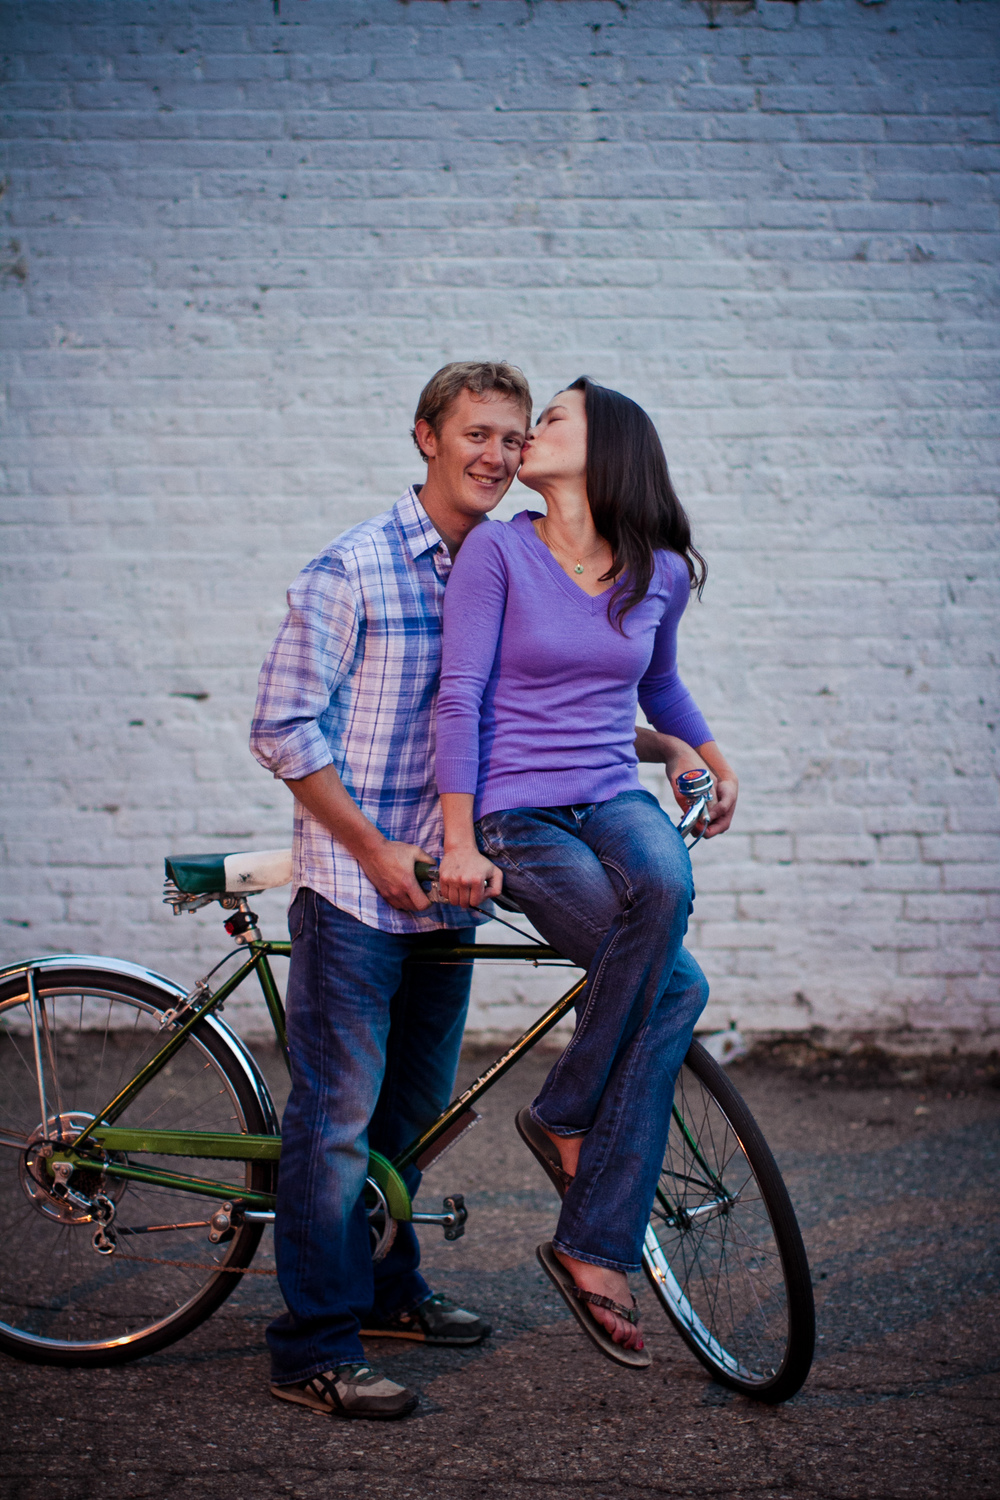 LoDo_Denver_Engagement_Photos_036.JPG